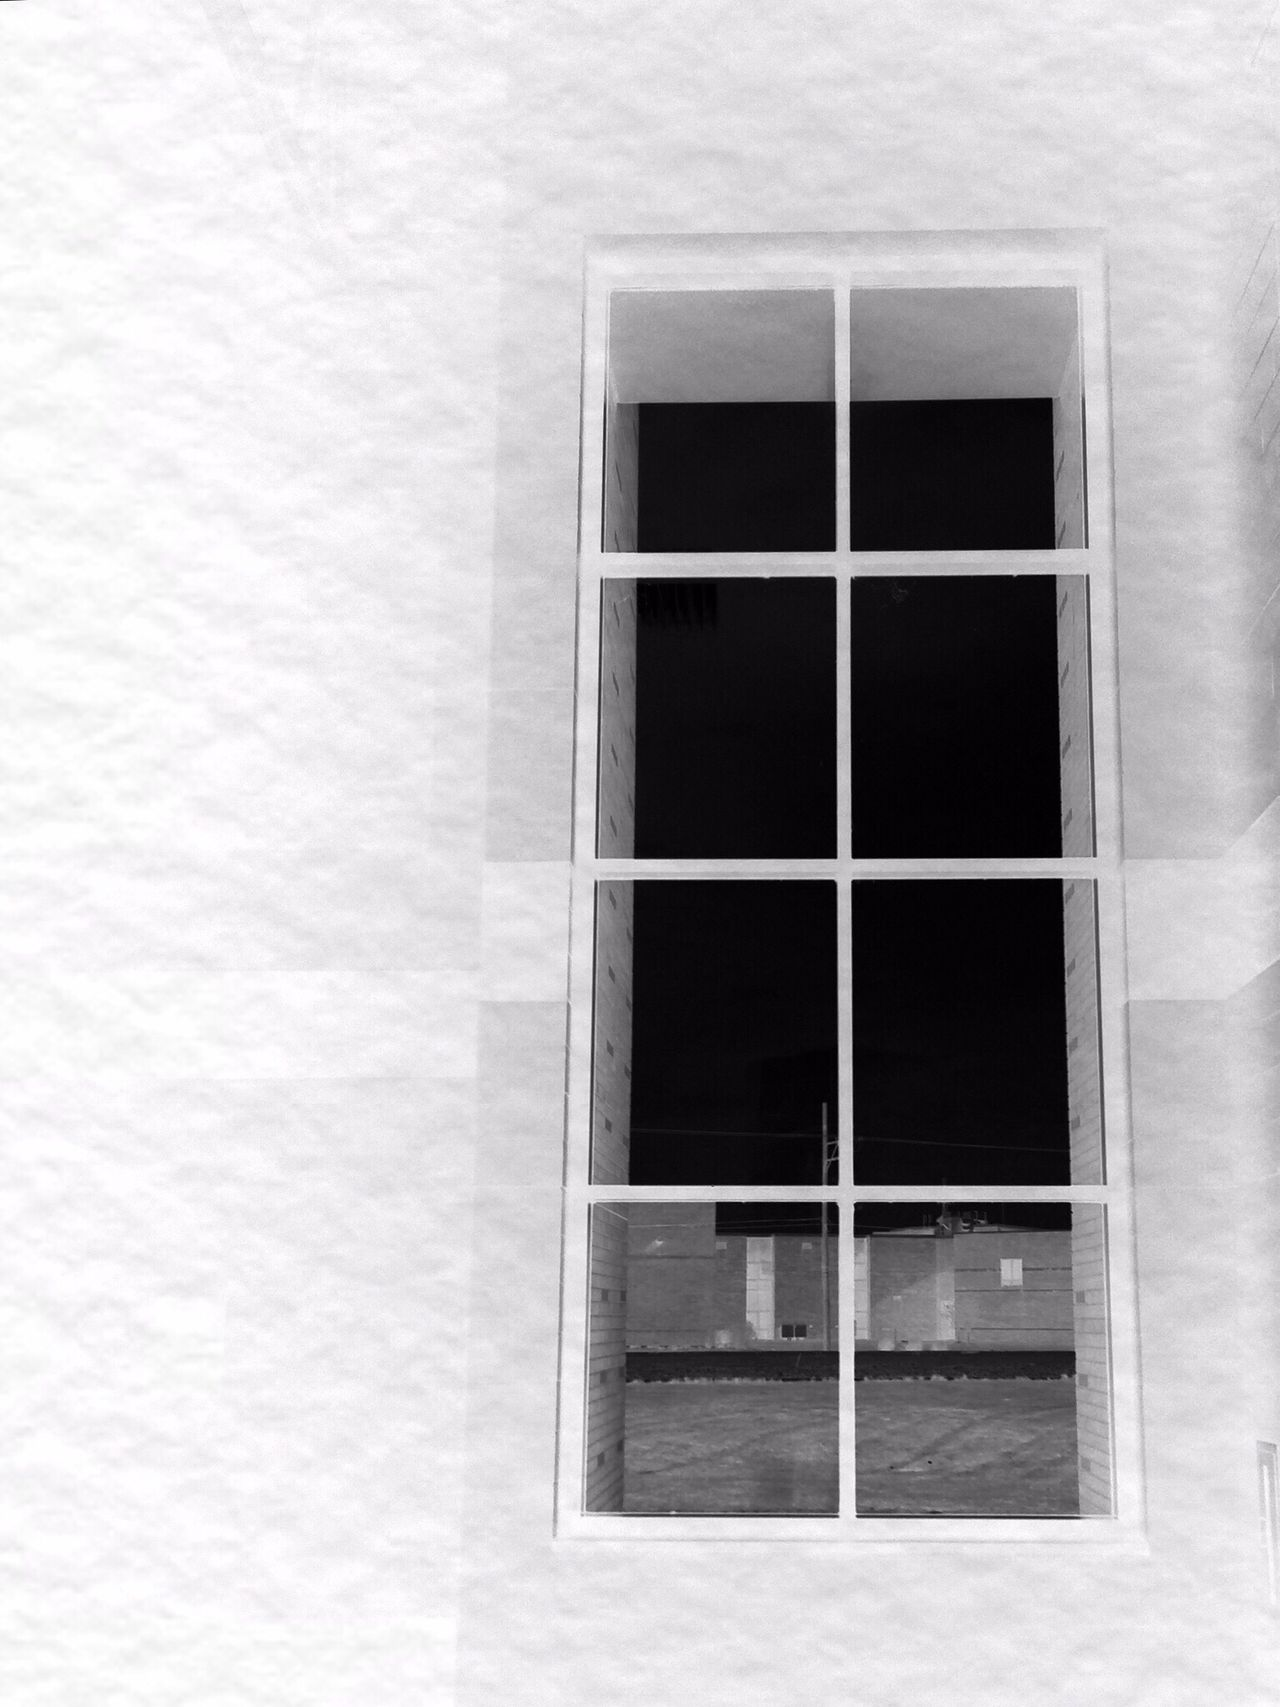 Large Windows Window Looking Out Black And White Textured Wall Oswego, IL